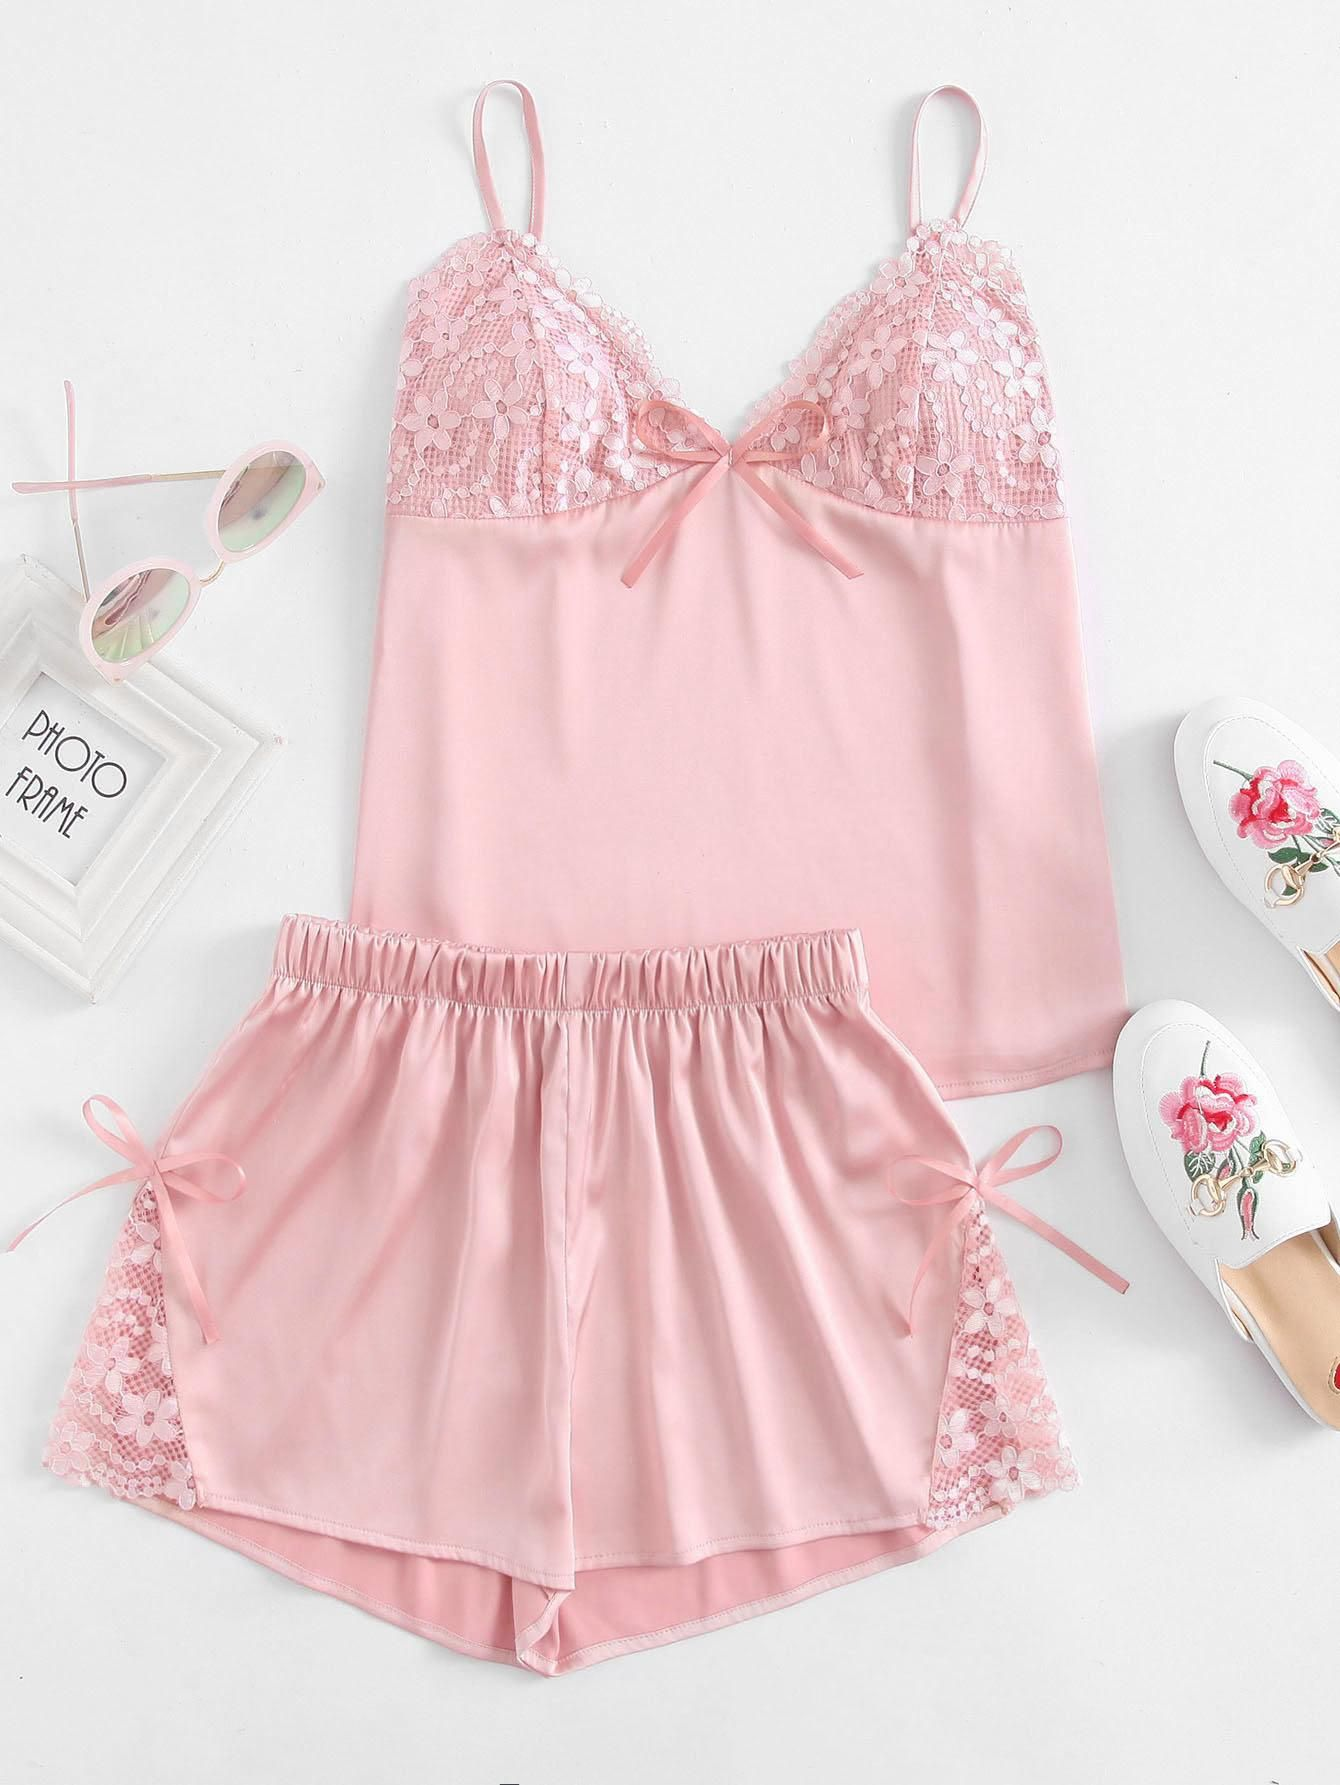 0ffb5f57896  BFCM  CyberMonday  SheIn -  SheIn Floral Lace Detail Bralette Cami Top  With Shorts Pajama Set - AdoreWe.com